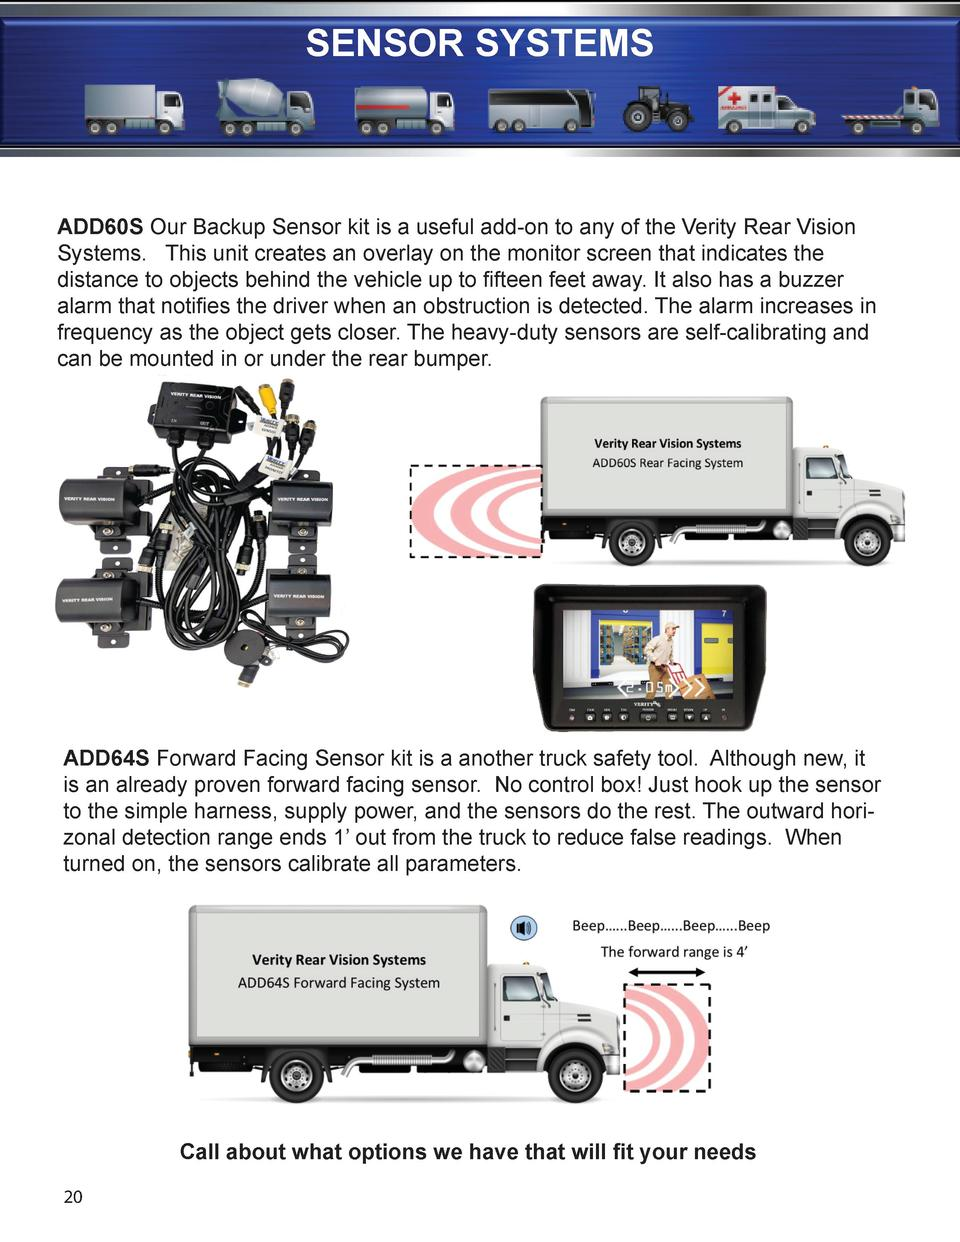 SENSOR SYSTEMS  ADD60S Our Backup Sensor kit is a useful add-on to any of the Verity Rear Vision Systems. This unit create...